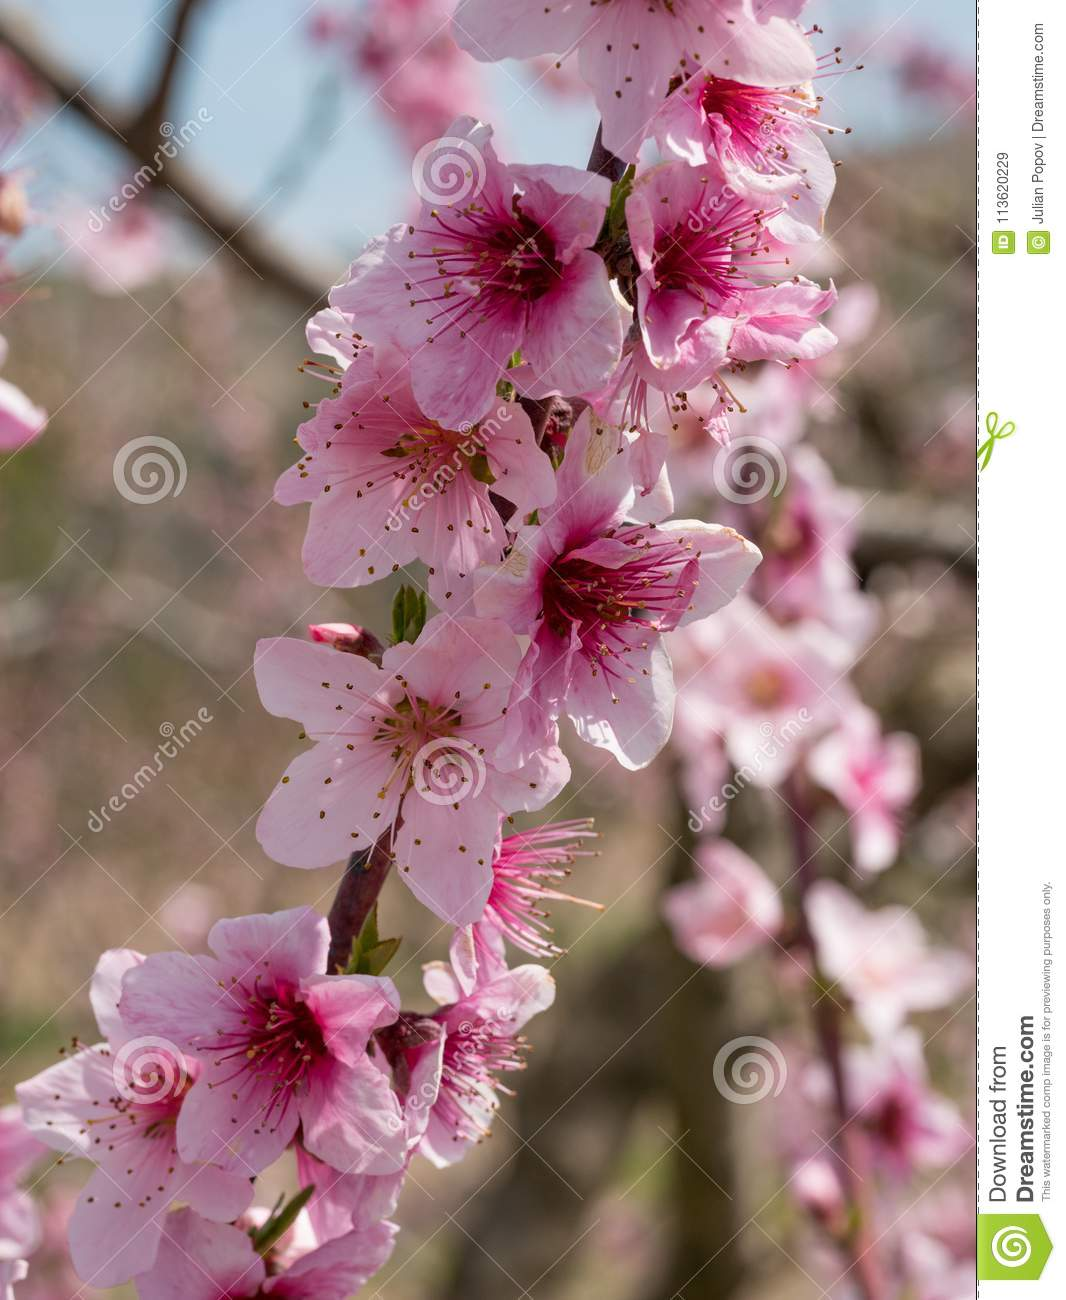 Pink Blossom Of Pear Pear Tree In Blossom Flowers Of Pear Tree